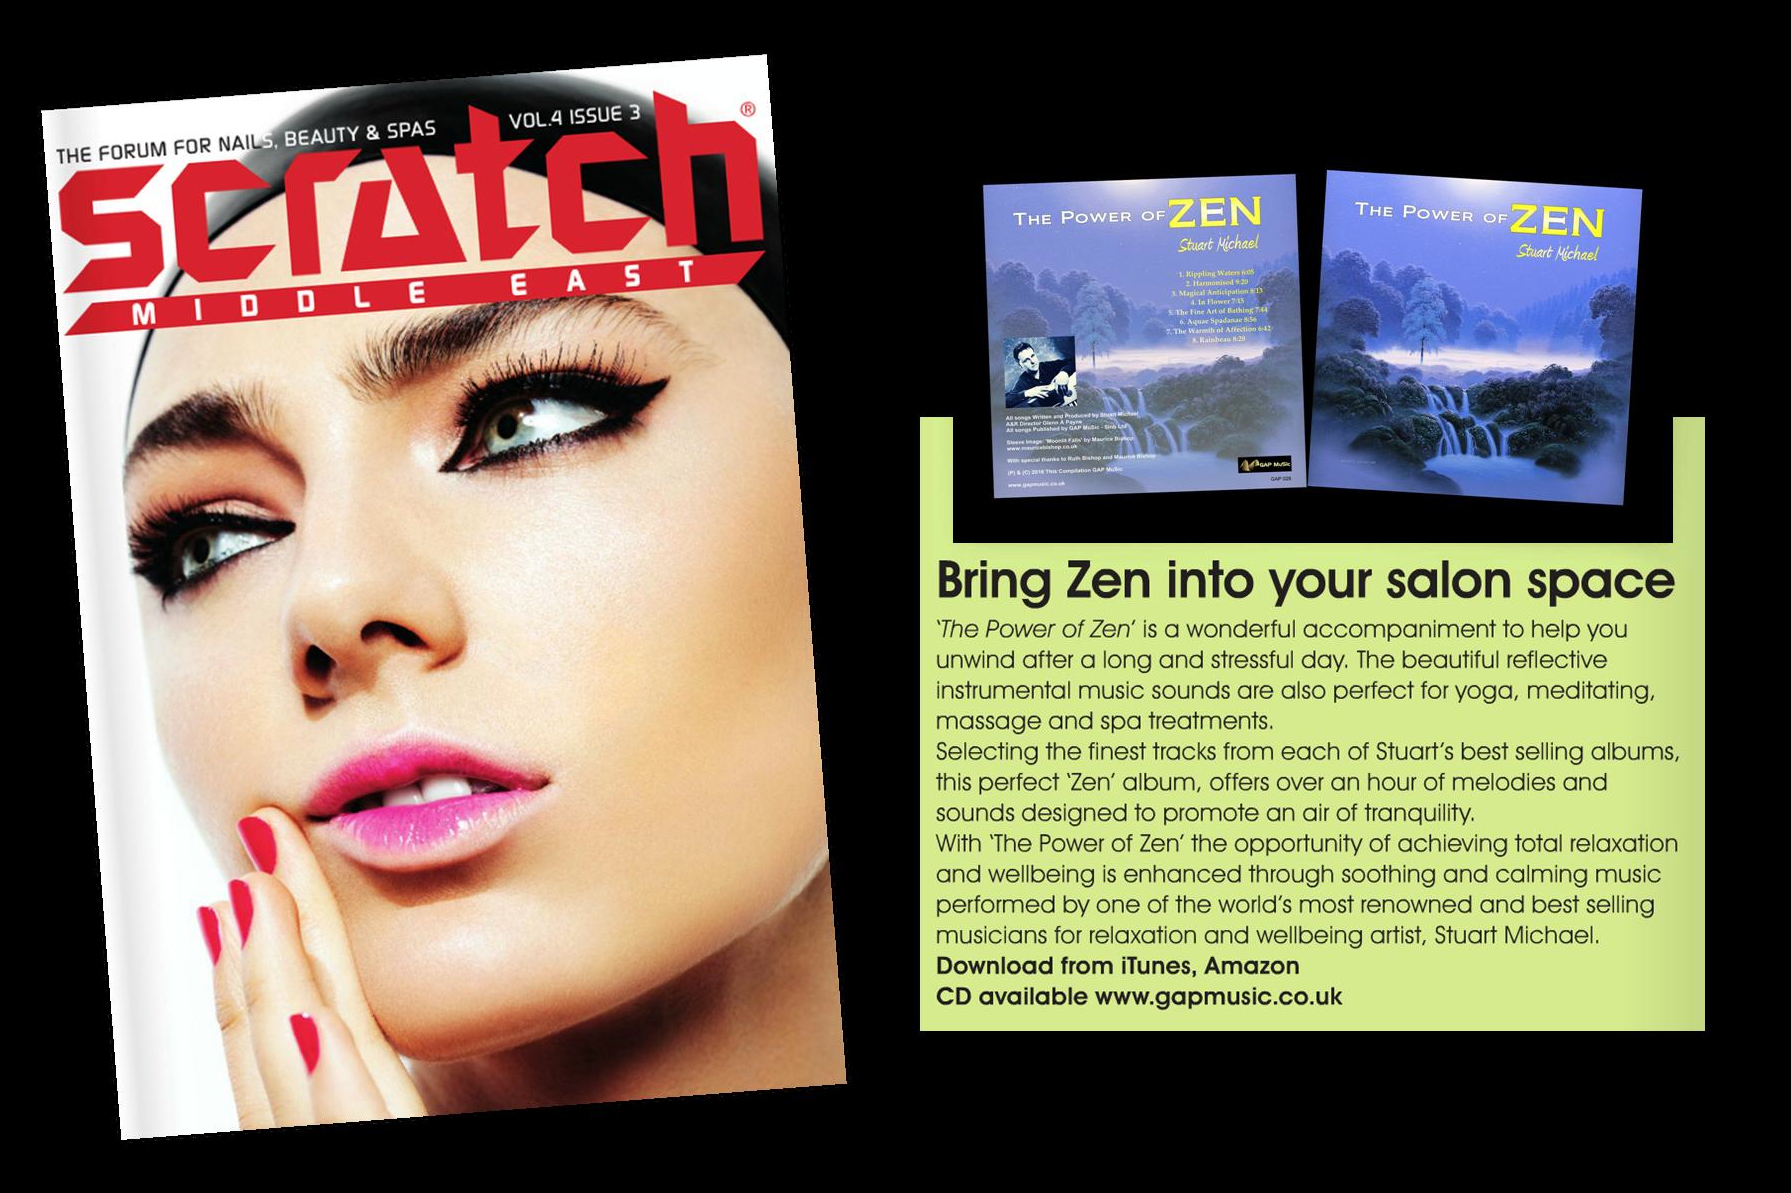 Scratch Magazine - The Power of Zen